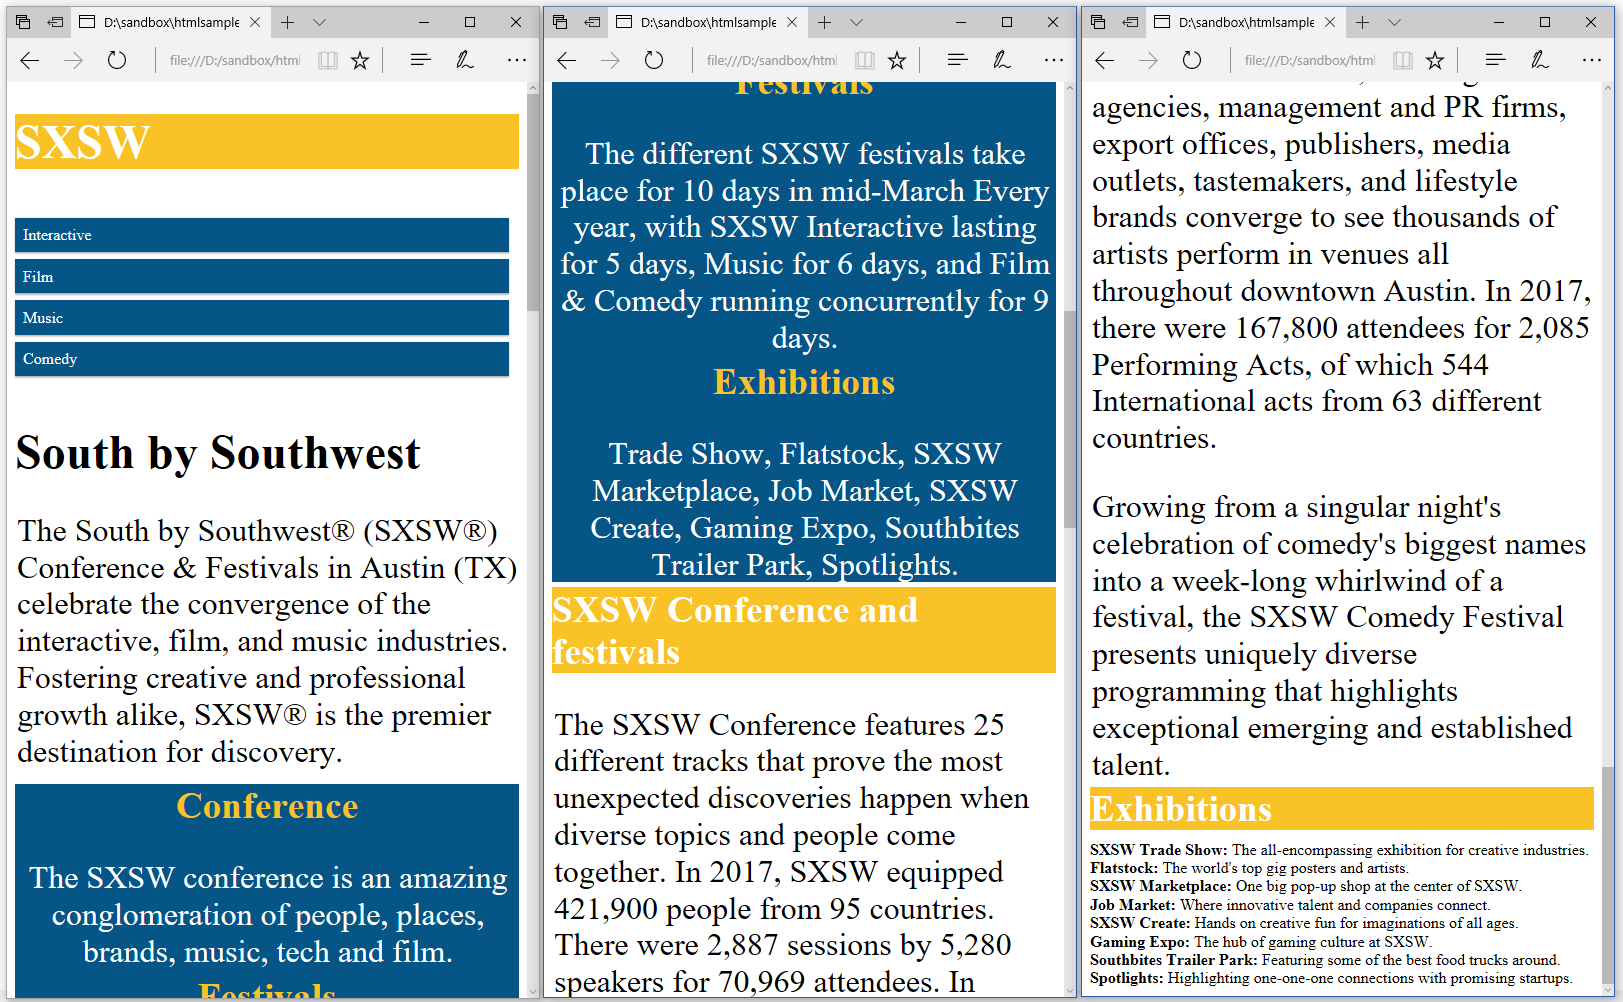 Figure 3.1: An HTML page about SXSW